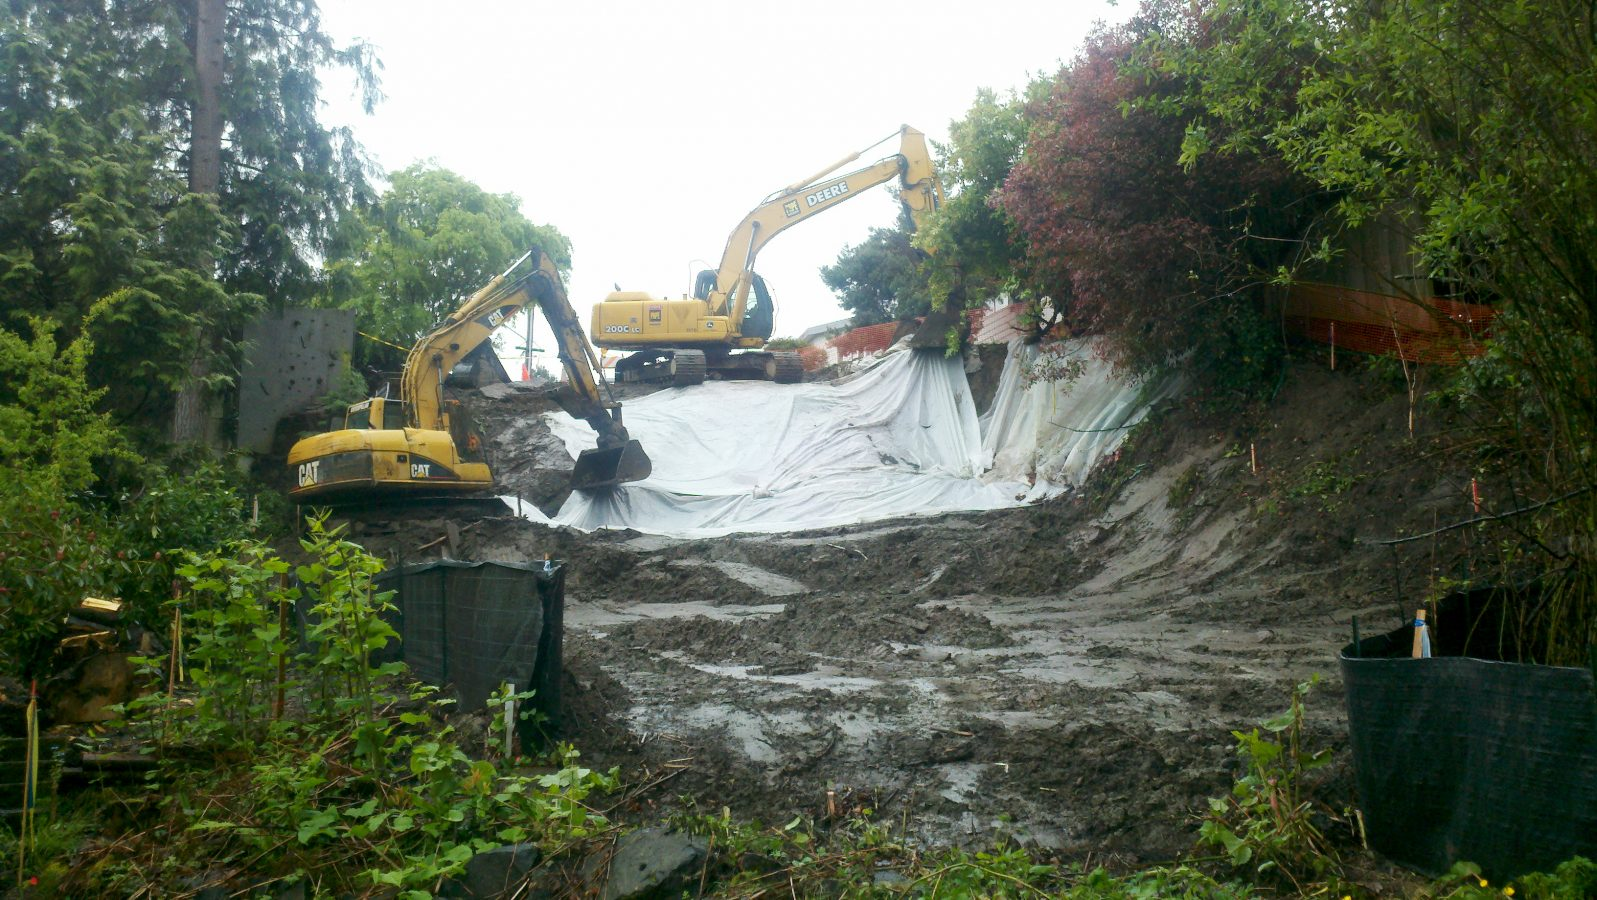 Excavating services in Vancouver, WA and Portland, OR